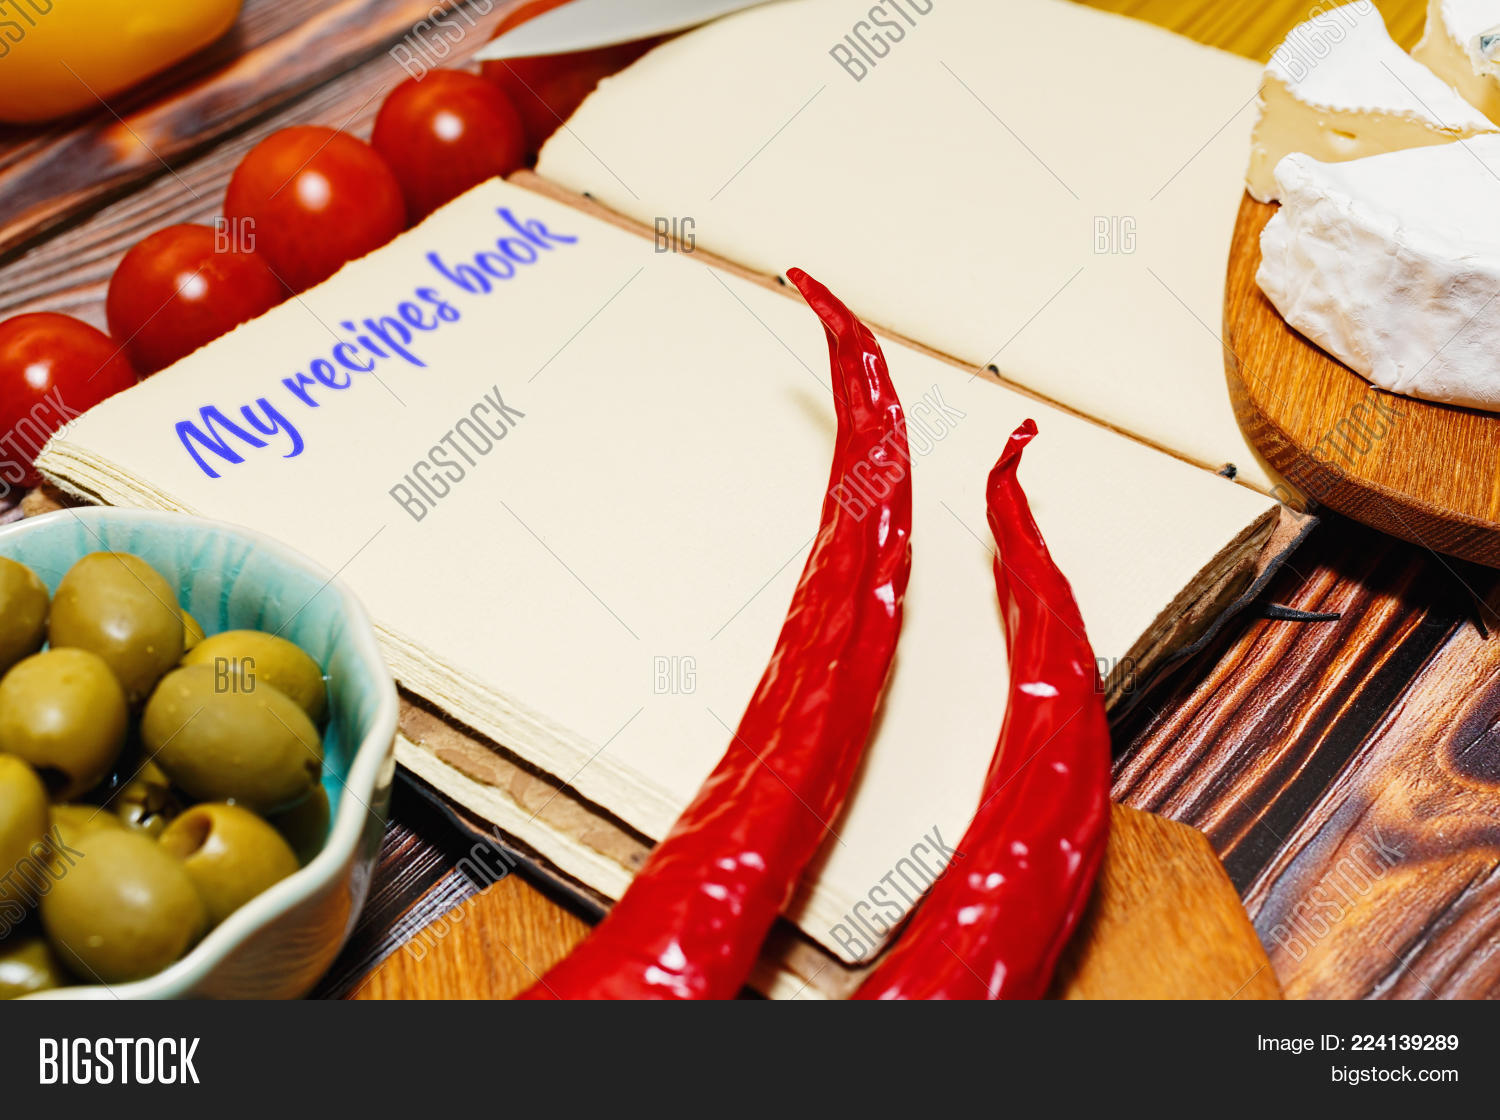 Vintage style recipes image photo free trial bigstock vintage style recipes book on a kitchen table and some cooking ingredients around chili peppers forumfinder Choice Image